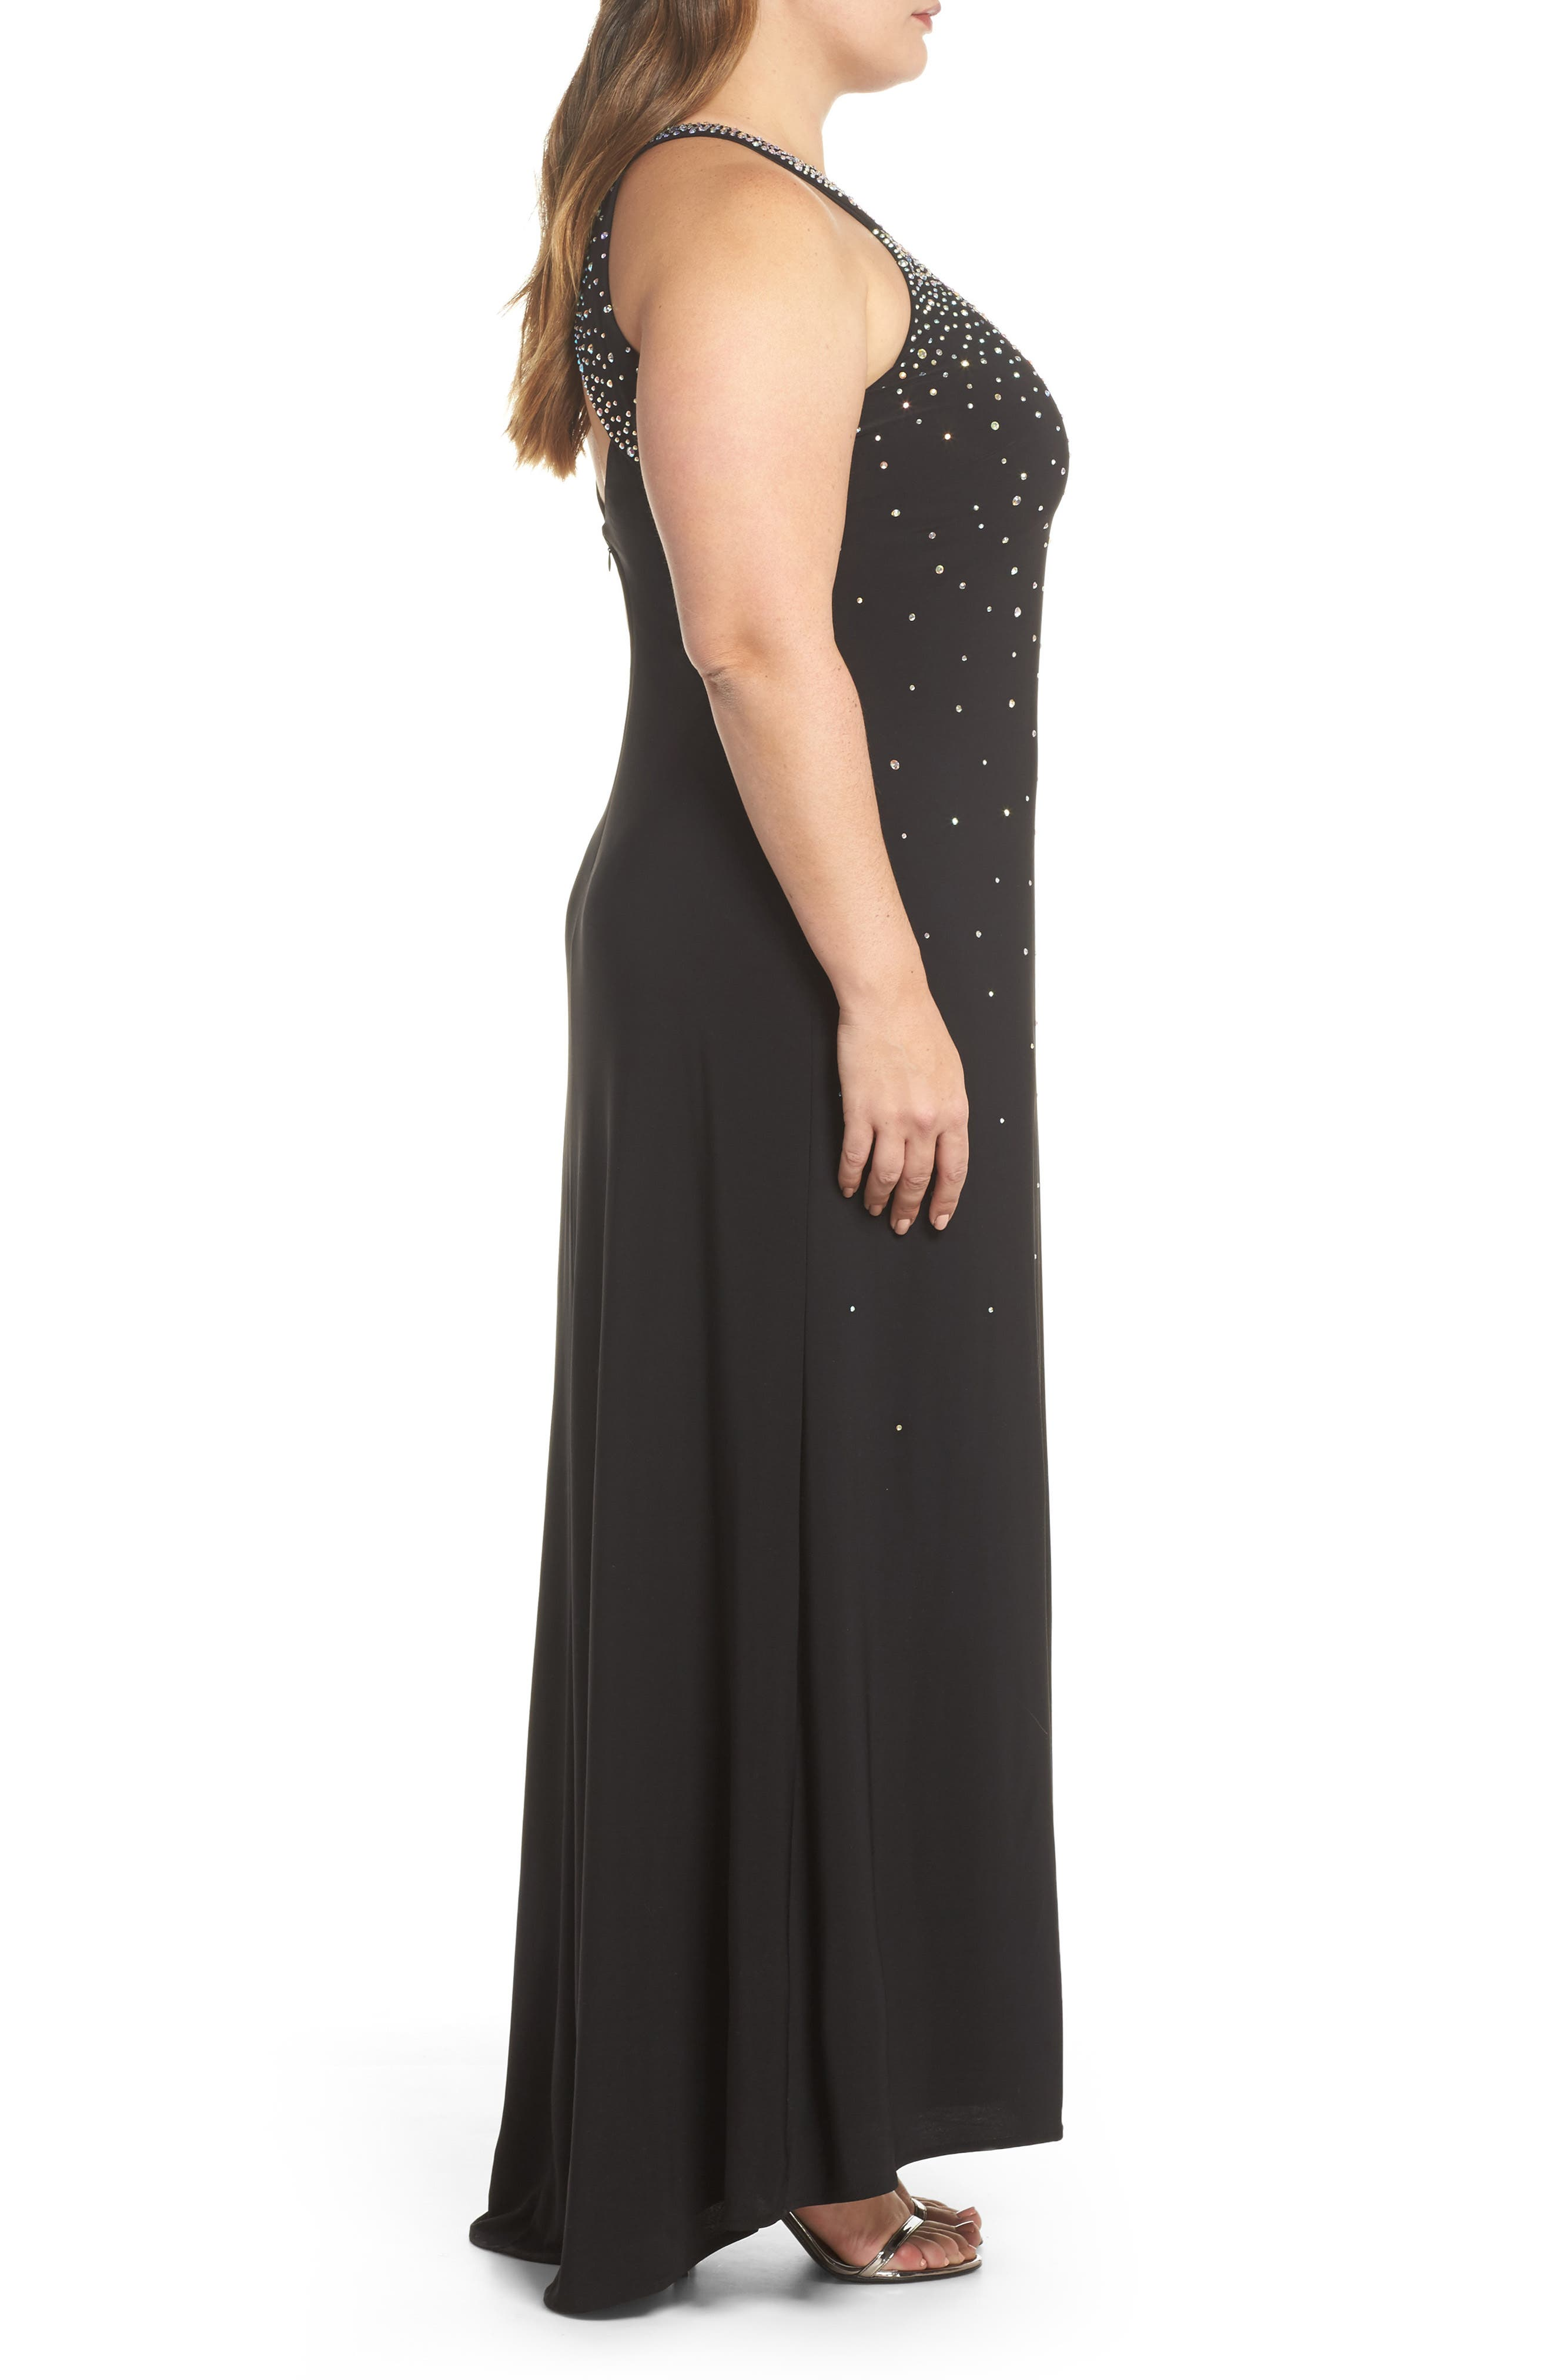 Heat Sealed Stone Knit Gown,                             Alternate thumbnail 3, color,                             Black